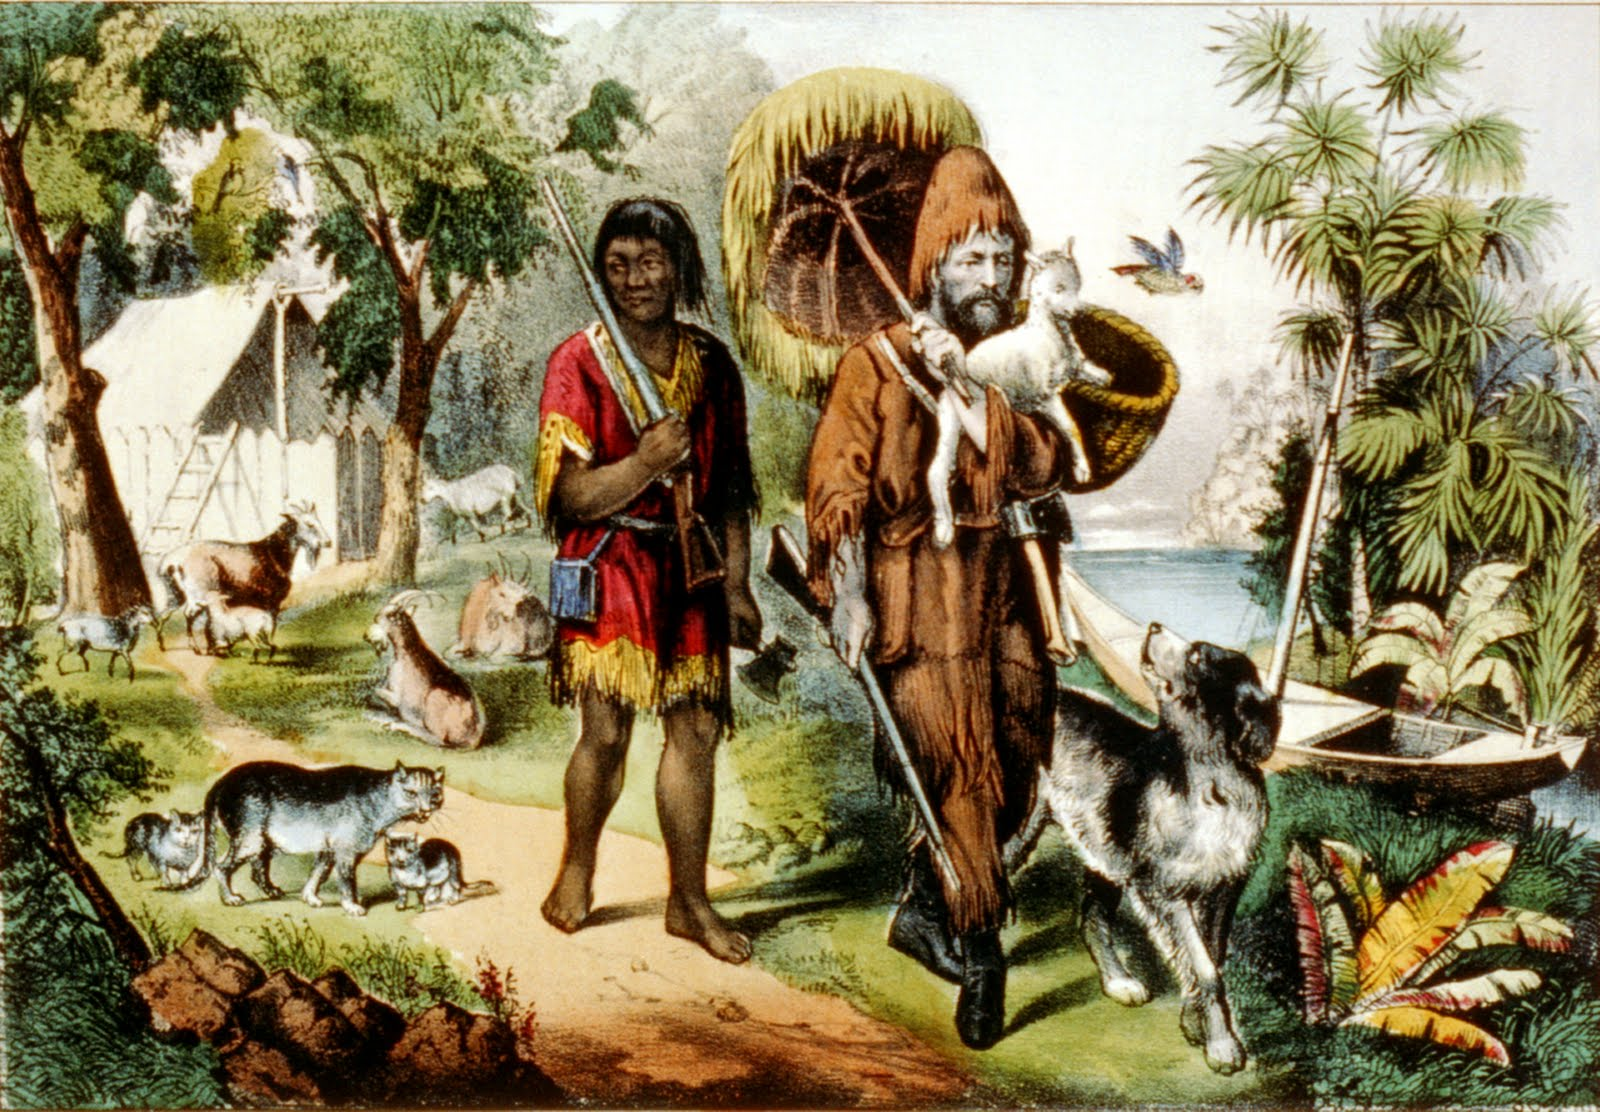 robinson crusoe the lost years Free summary and analysis of escape from the island in daniel defoe's robinson crusoe lost all at once around this time, crusoe years on the island, crusoe.